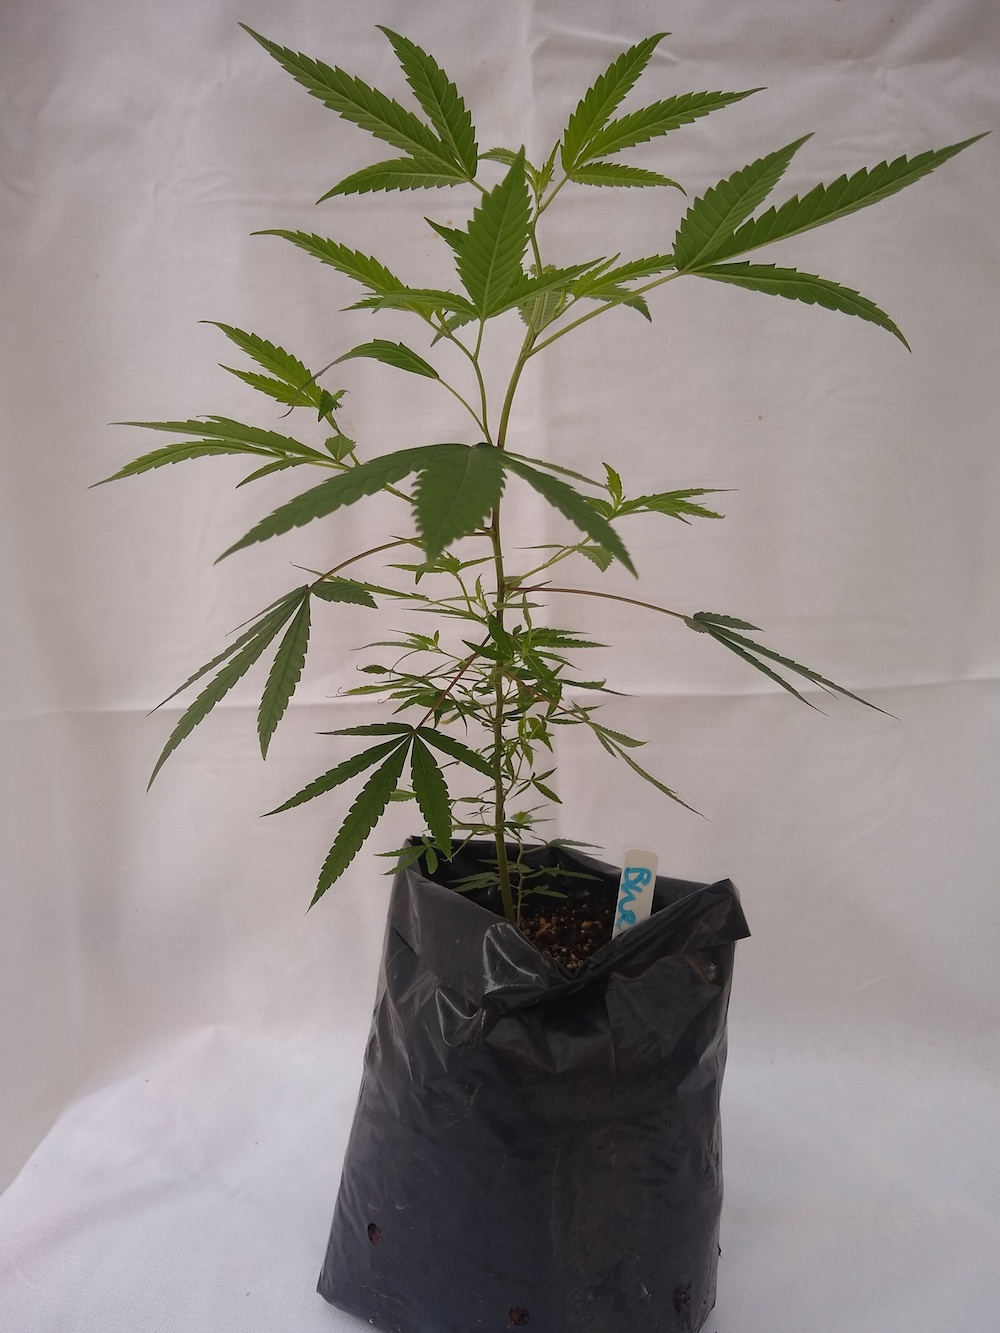 Bubba Cookies - Hybrid  Genetics - (Bubba Kush x Girl Scout Cookies)  Pre-teen staged and pre-rooted in rock wool, planted in organic soil   Suggested retail  - $25 each